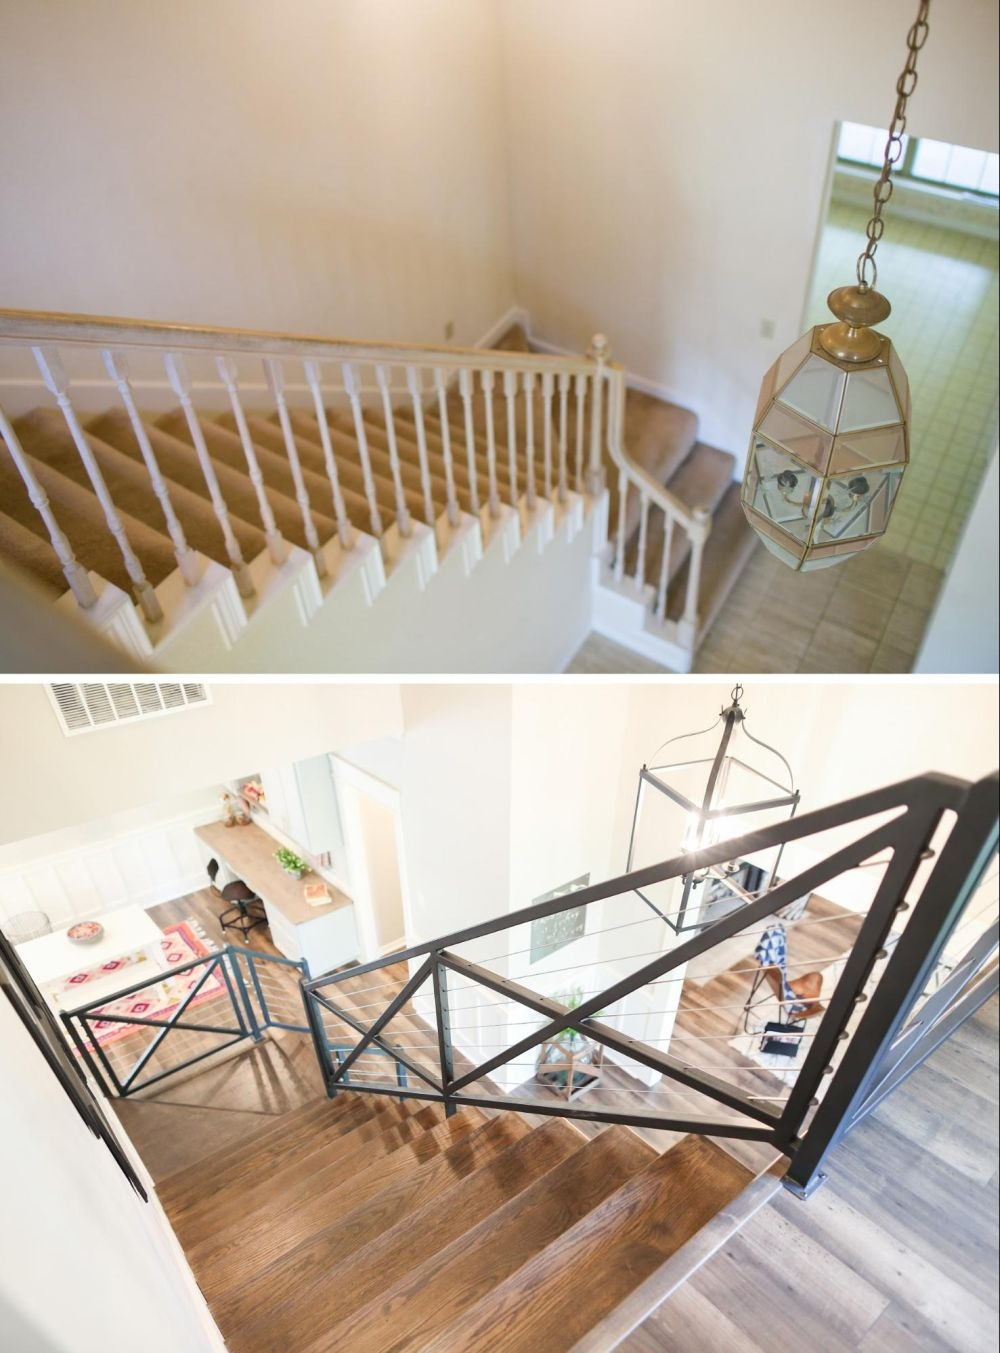 How To Give Your Old Stair Railings A Fresh New Look On A Small Budget   Wrought Iron Stair Railings Interior Cost   Stair Parts   Iron Staircase Railings   Rod Iron Balusters   Wood   Stair Spindles